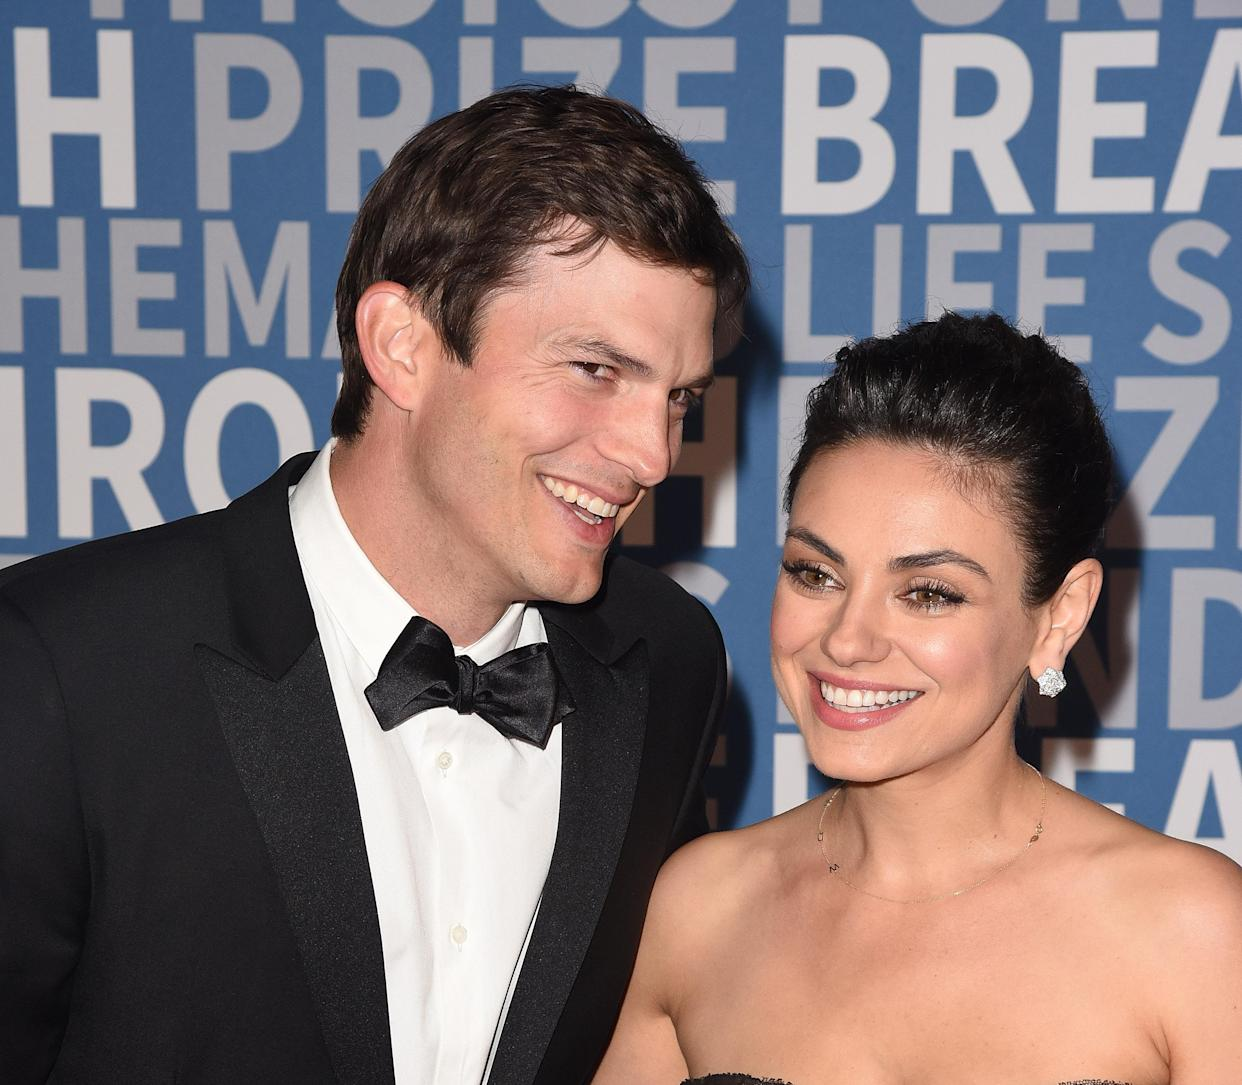 MOUNTAIN VIEW, CA - DECEMBER 03:  Actors Ashton Kutcher (L) and Mila Kunis attend the 2018 Breakthrough Prize at NASA Ames Research Center on December 3, 2017 in Mountain View, California.  (Photo by C Flanigan/FilmMagic)